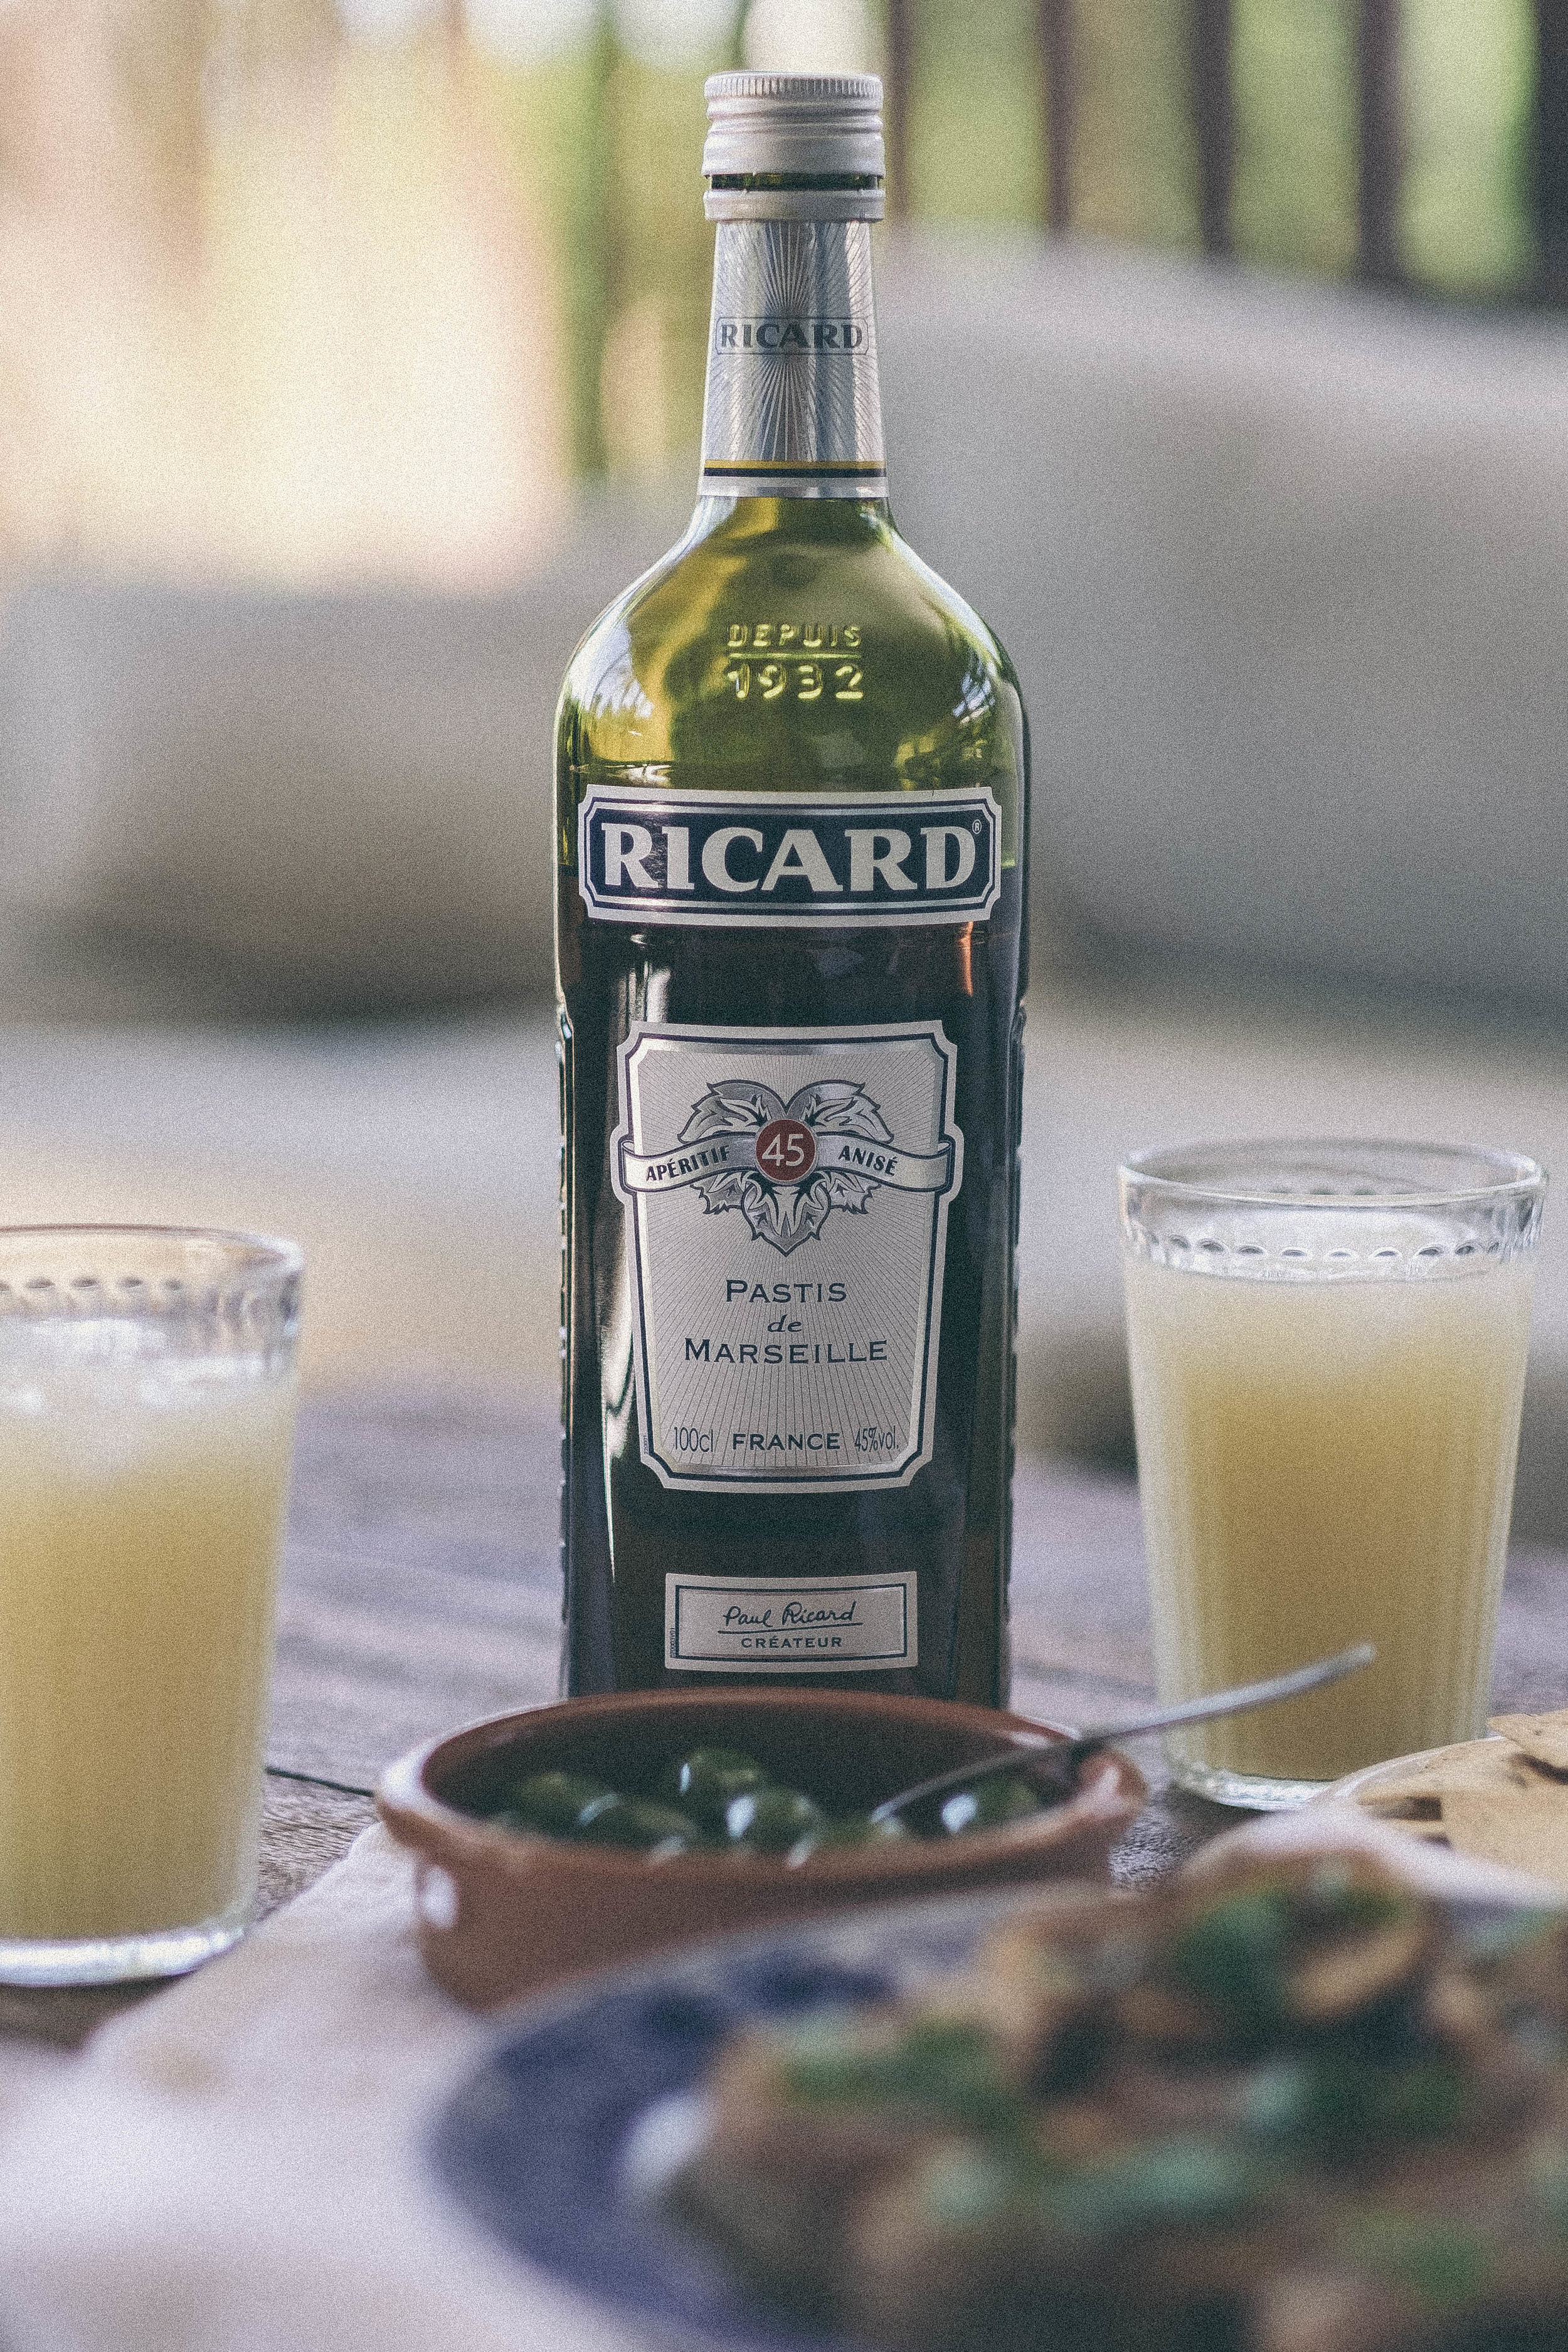 afternoon apéritif: pastis, olives and anchovy crostini #aperitif #ricard #pastis #anchovycrostini #olives #cheese #bread #tapas #entertaining #anise